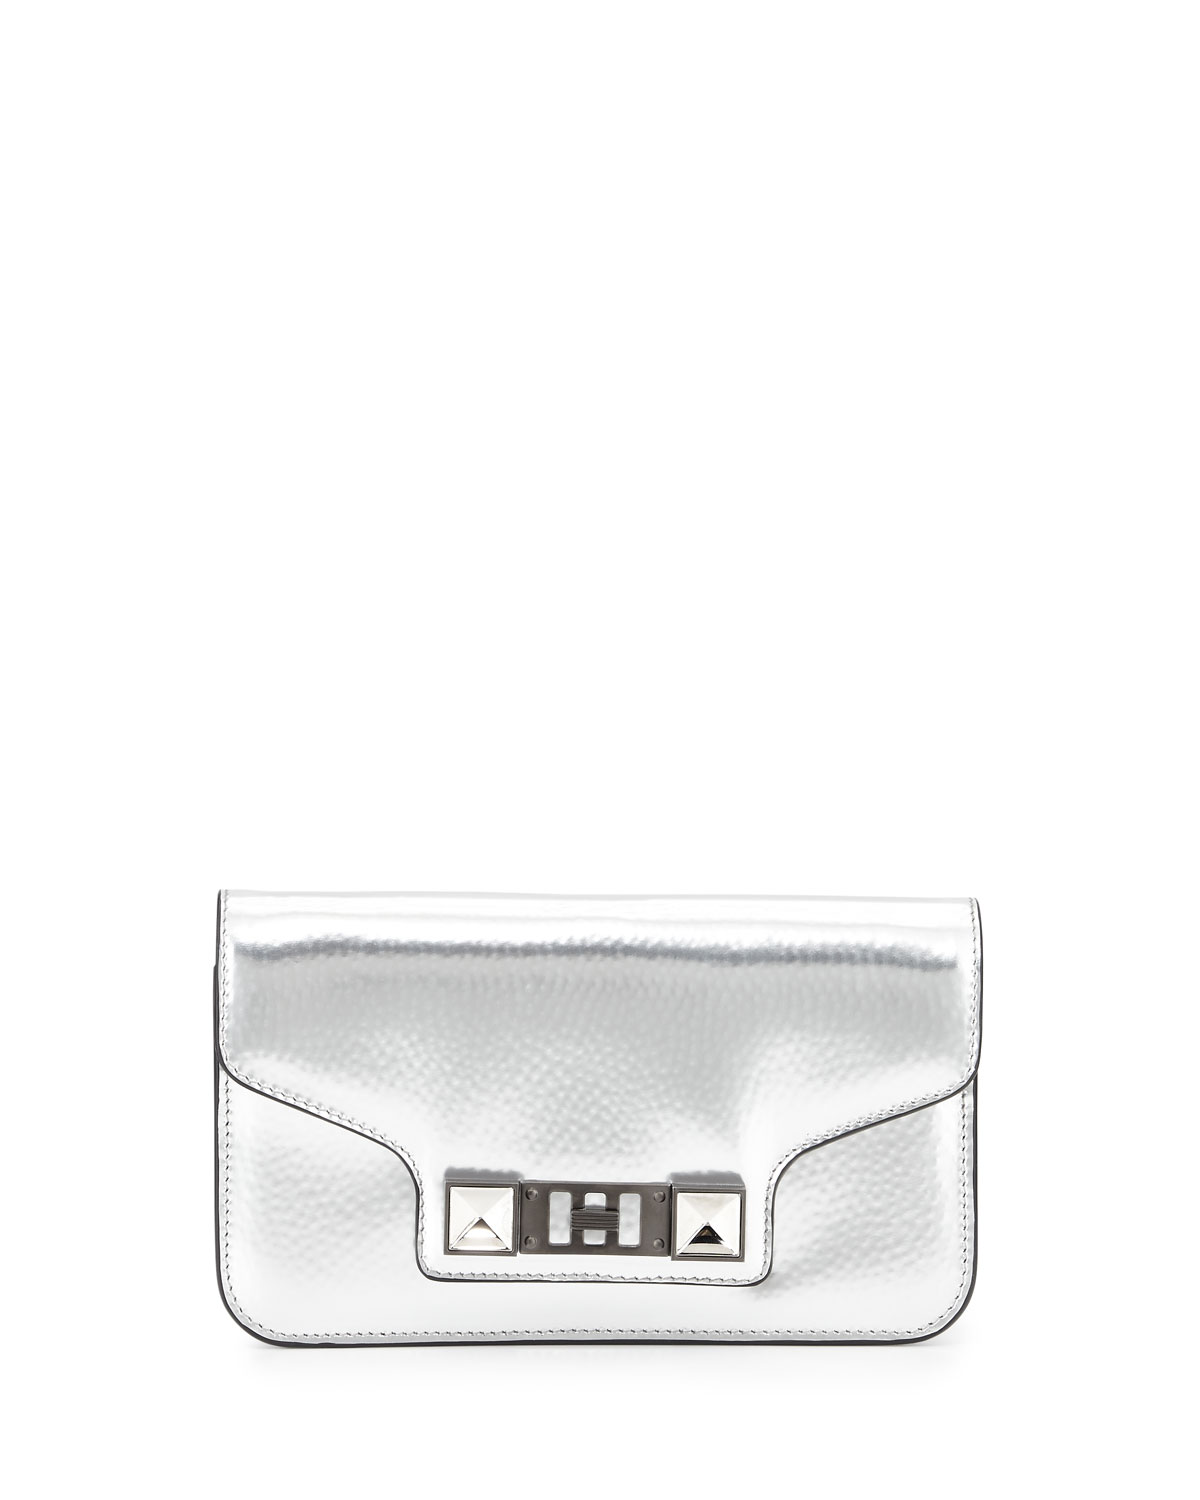 PS11 Metallic Leather Chain Wallet